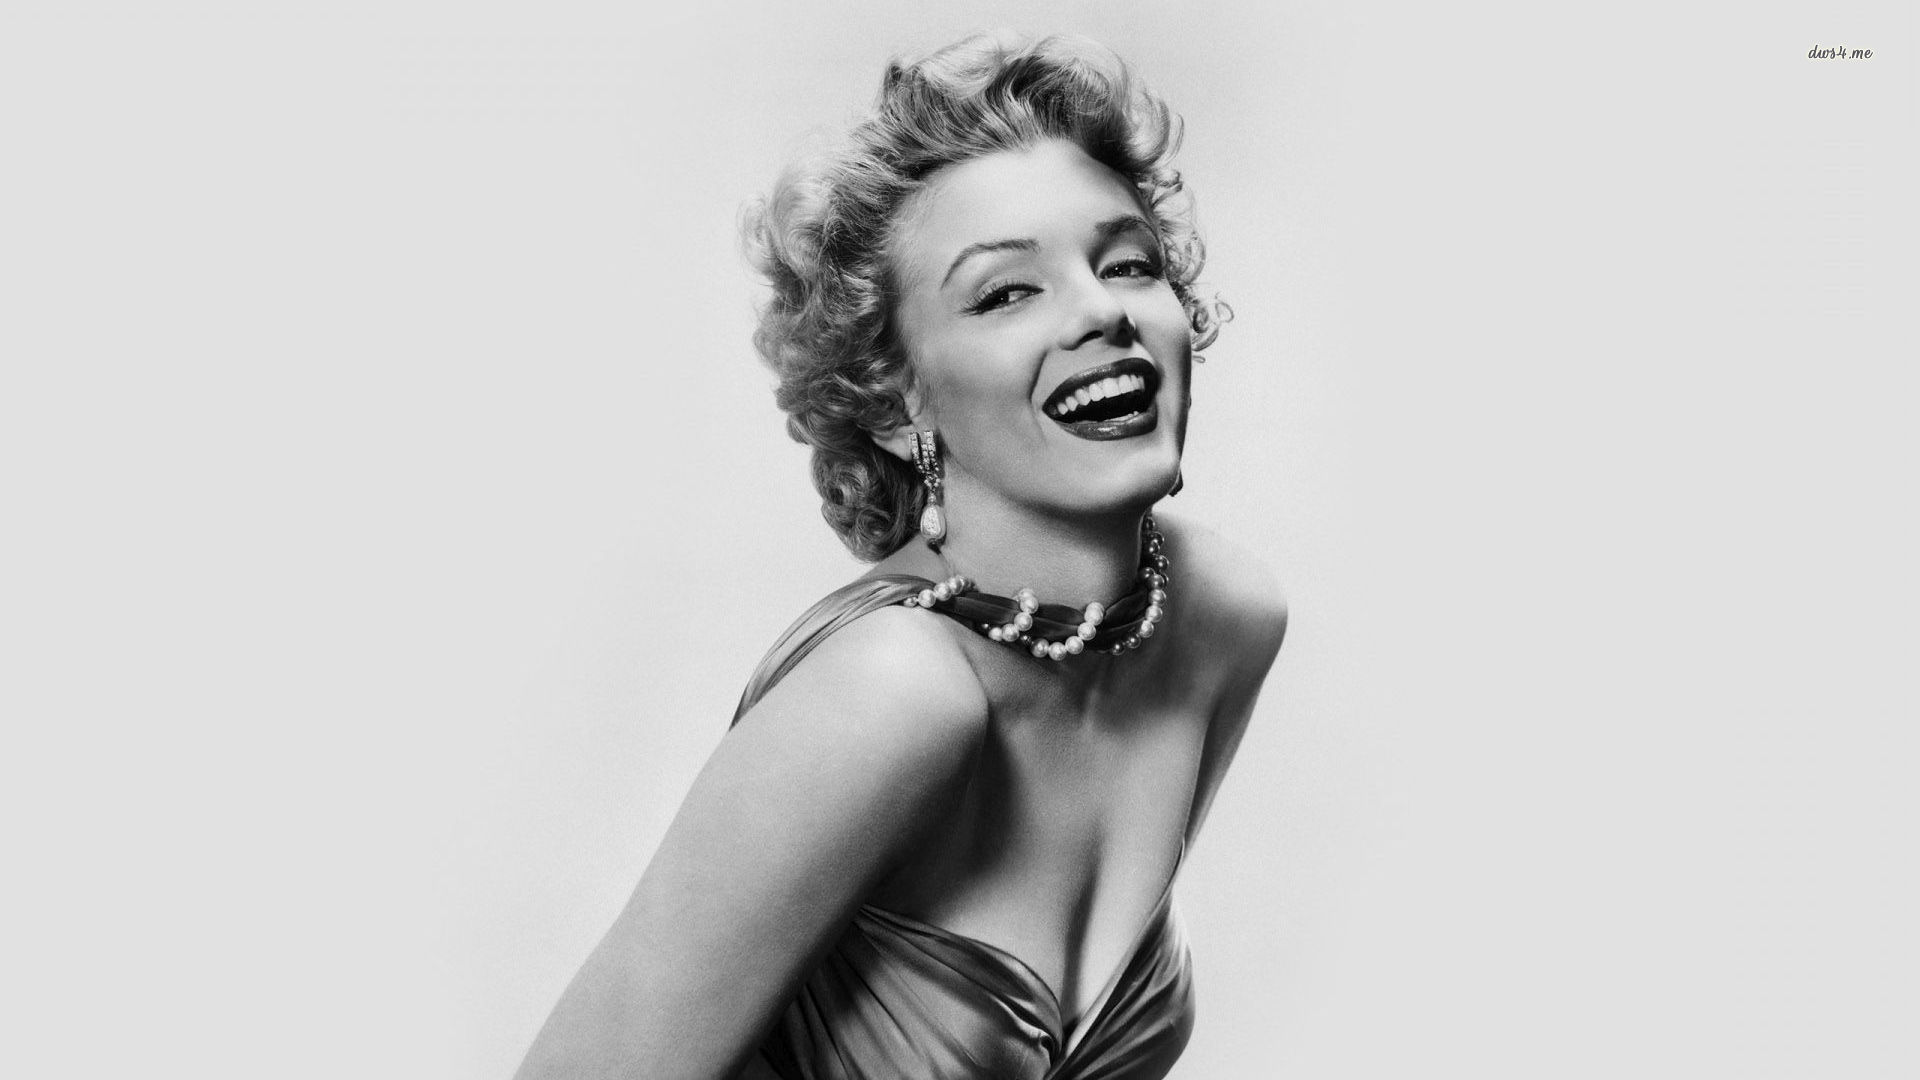 Citaten Marilyn Monroe Hd : Marilyn monroe pictures images